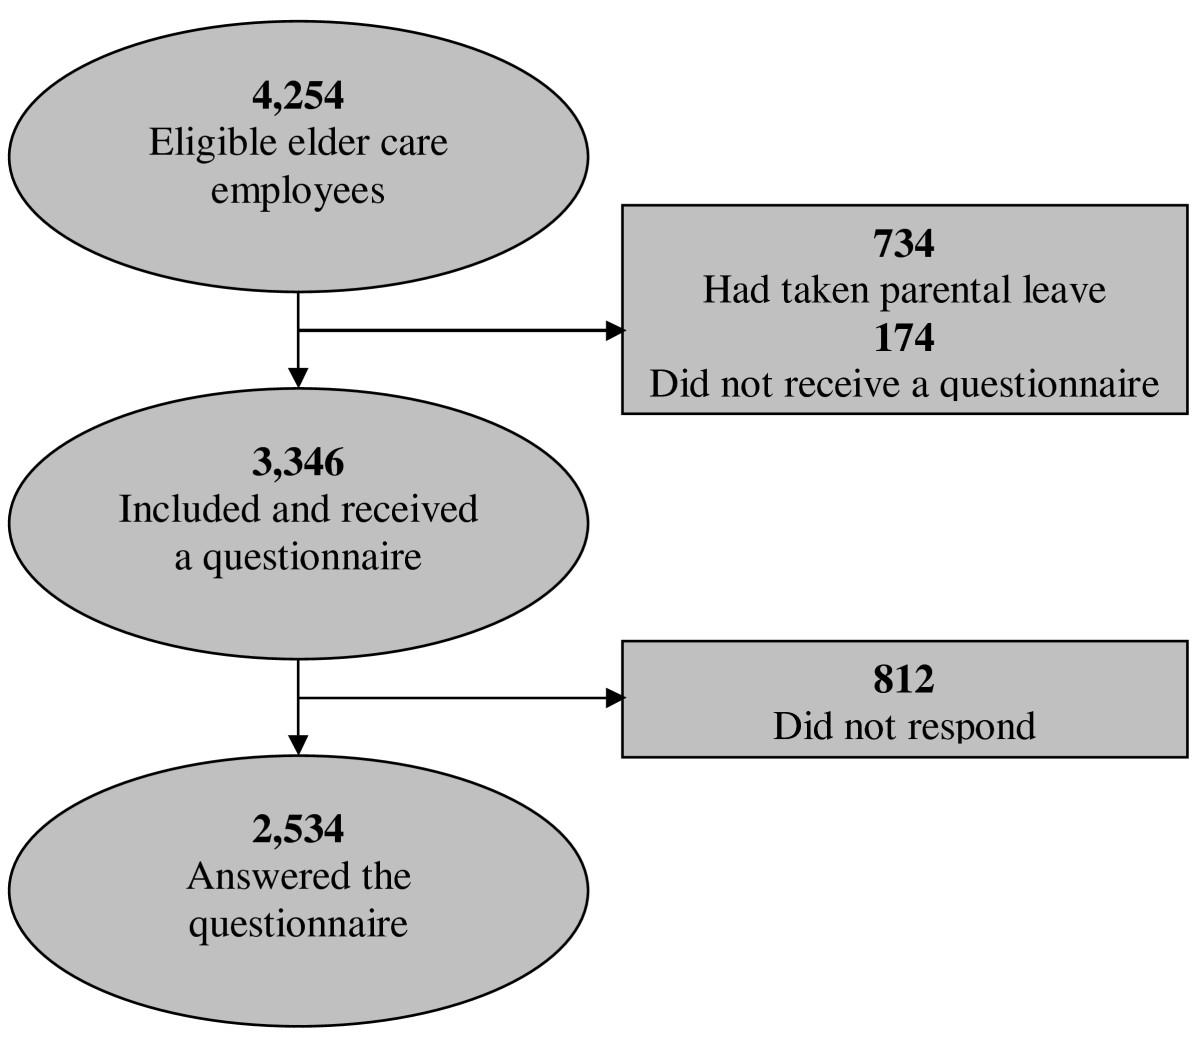 https://static-content.springer.com/image/art%3A10.1186%2F1471-2458-13-578/MediaObjects/12889_2013_Article_5538_Fig1_HTML.jpg